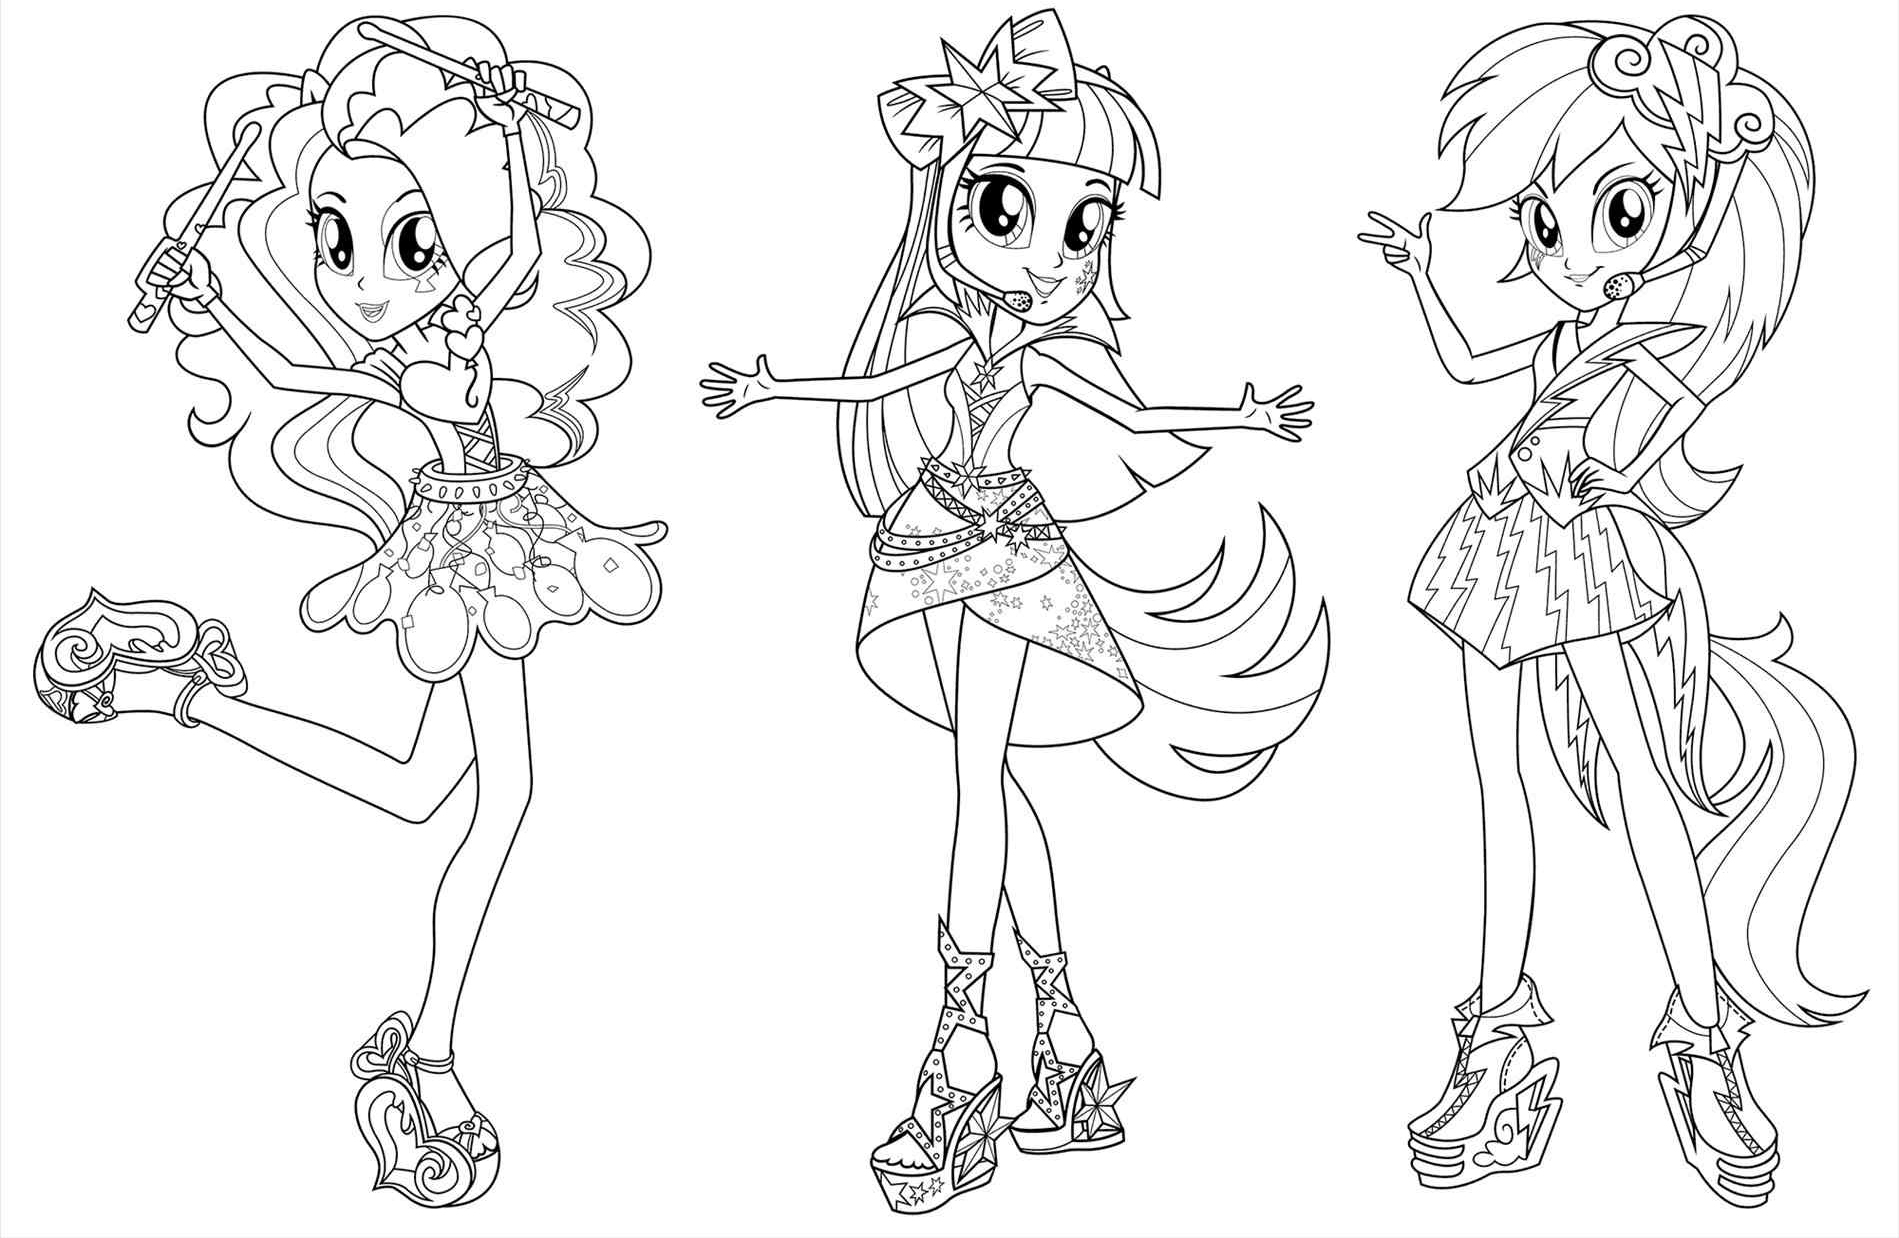 my little pony equestria girl coloring pages mlp equestria girls rainbow rocks coloring pages get pony little coloring my equestria girl pages